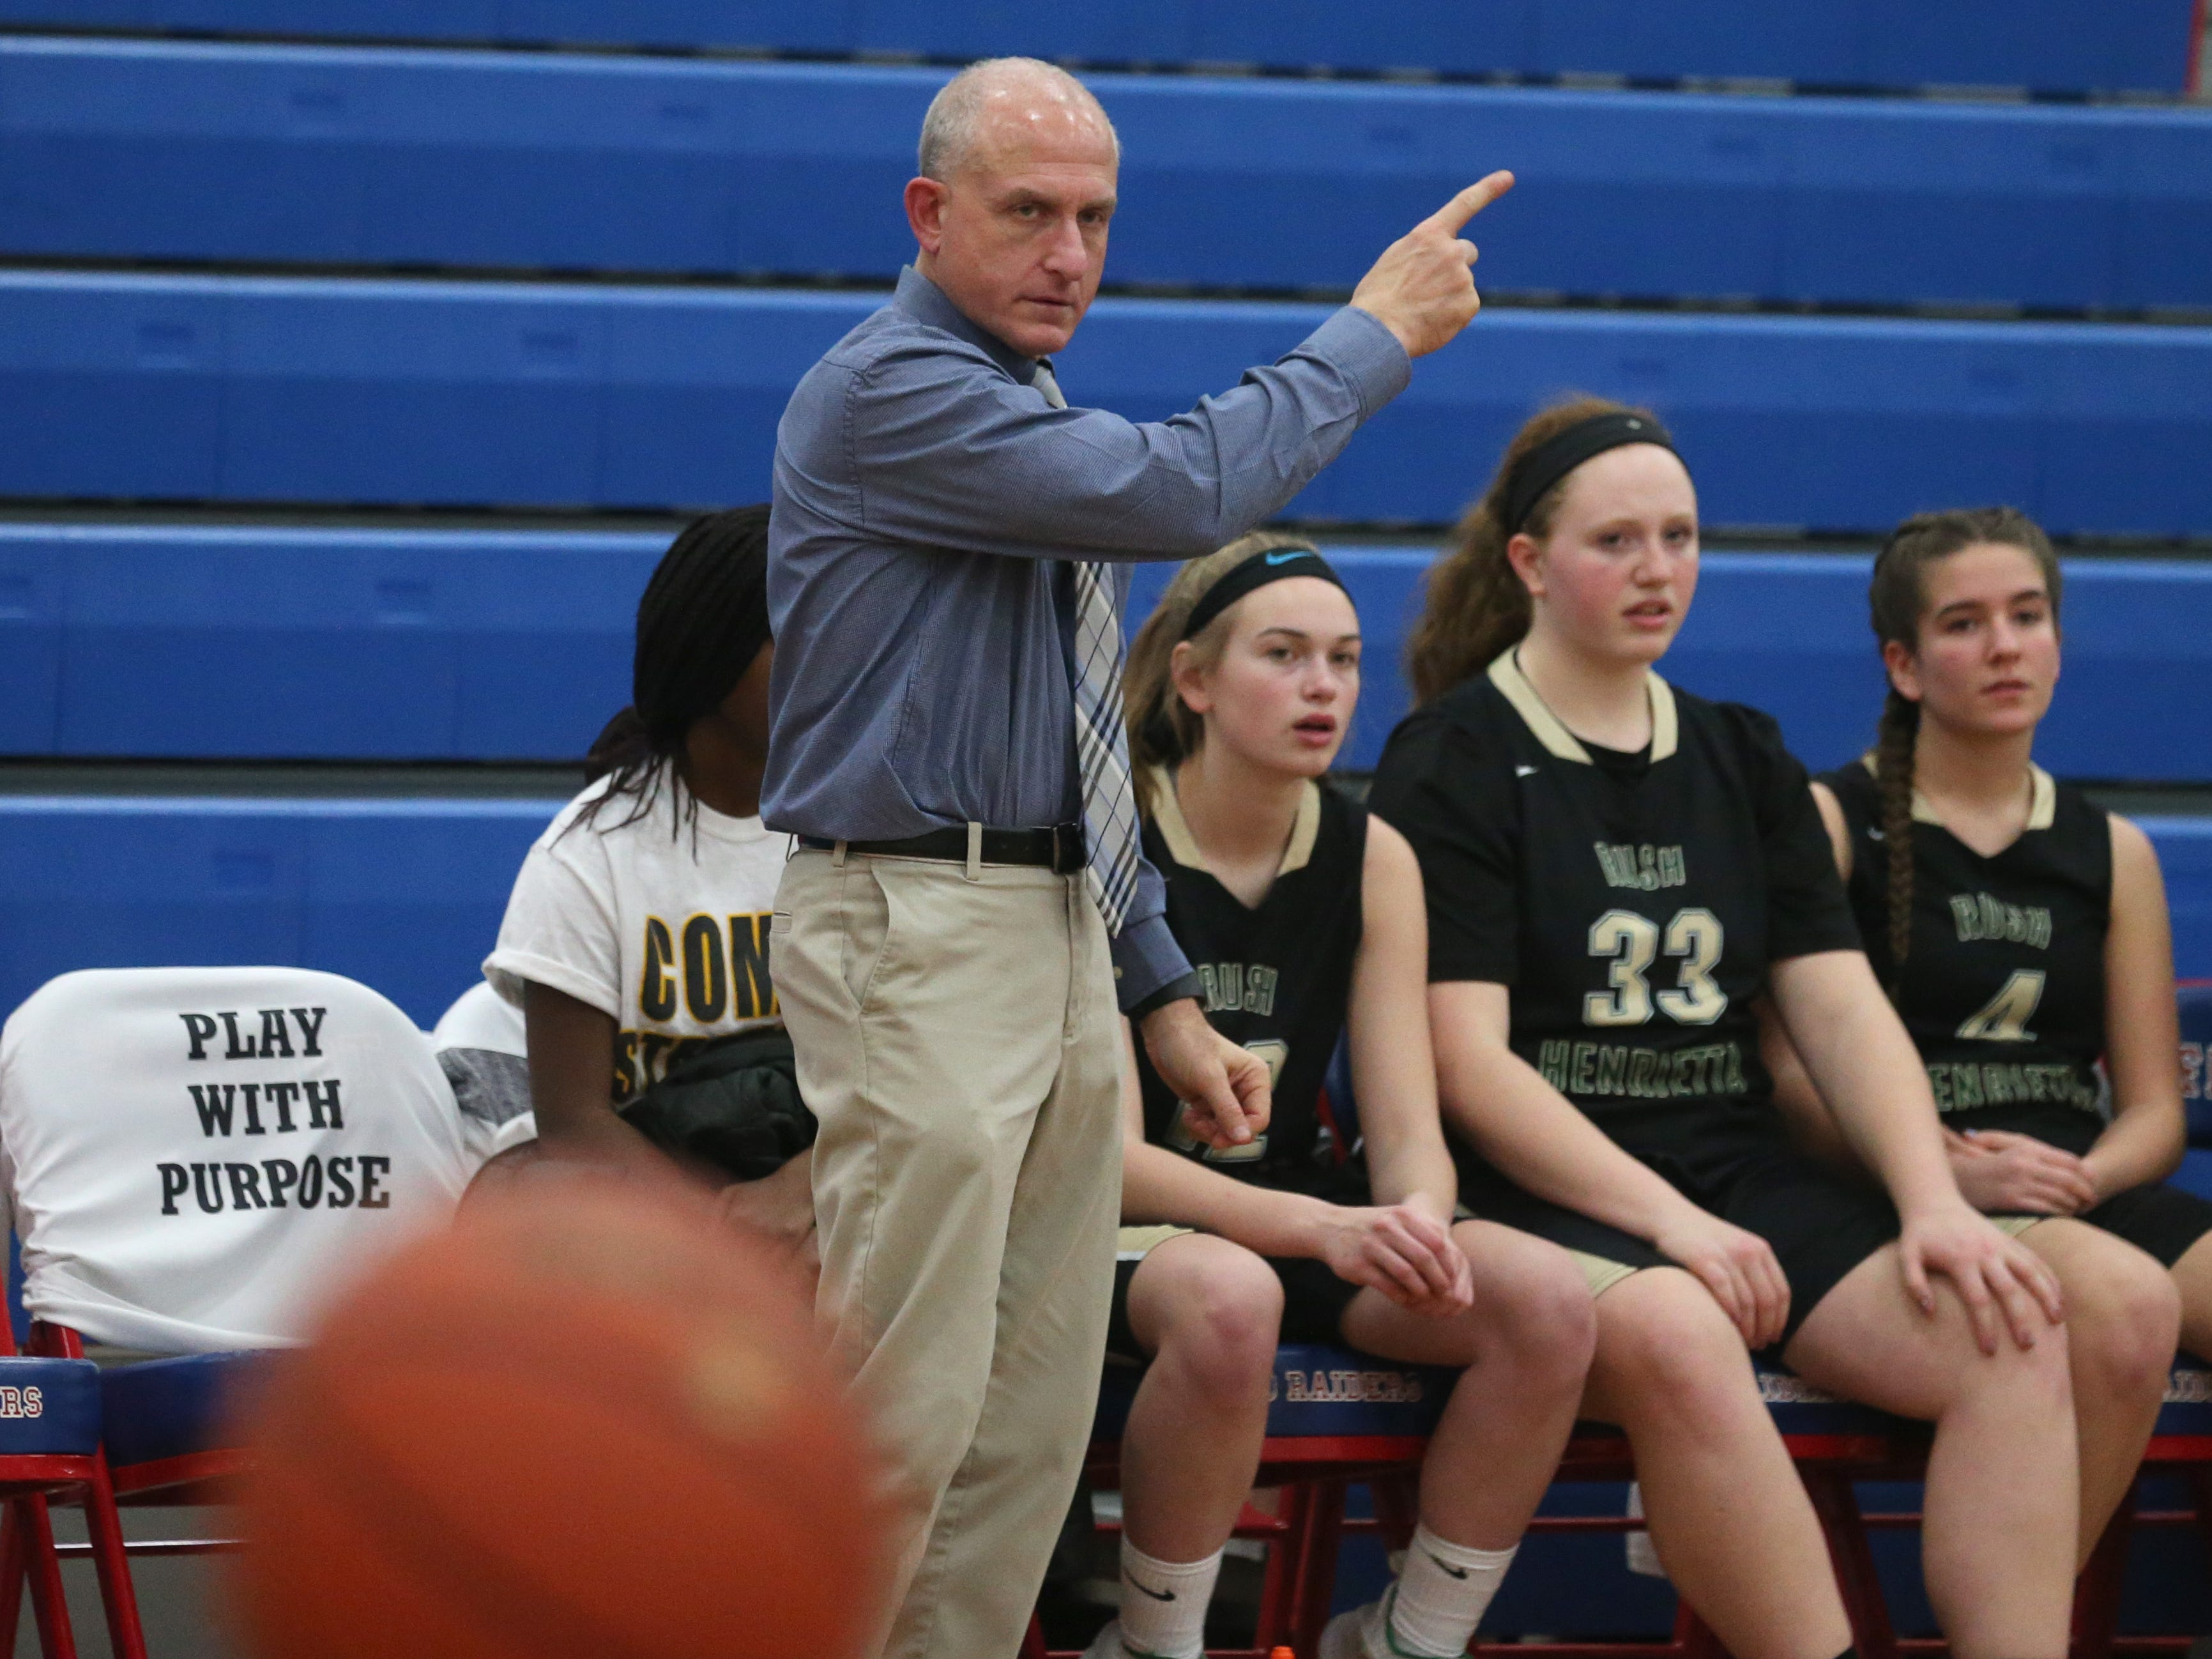 Rush-Henrietta head coach Alan Regan gives the officials a helping hand in the call of ball possesion.